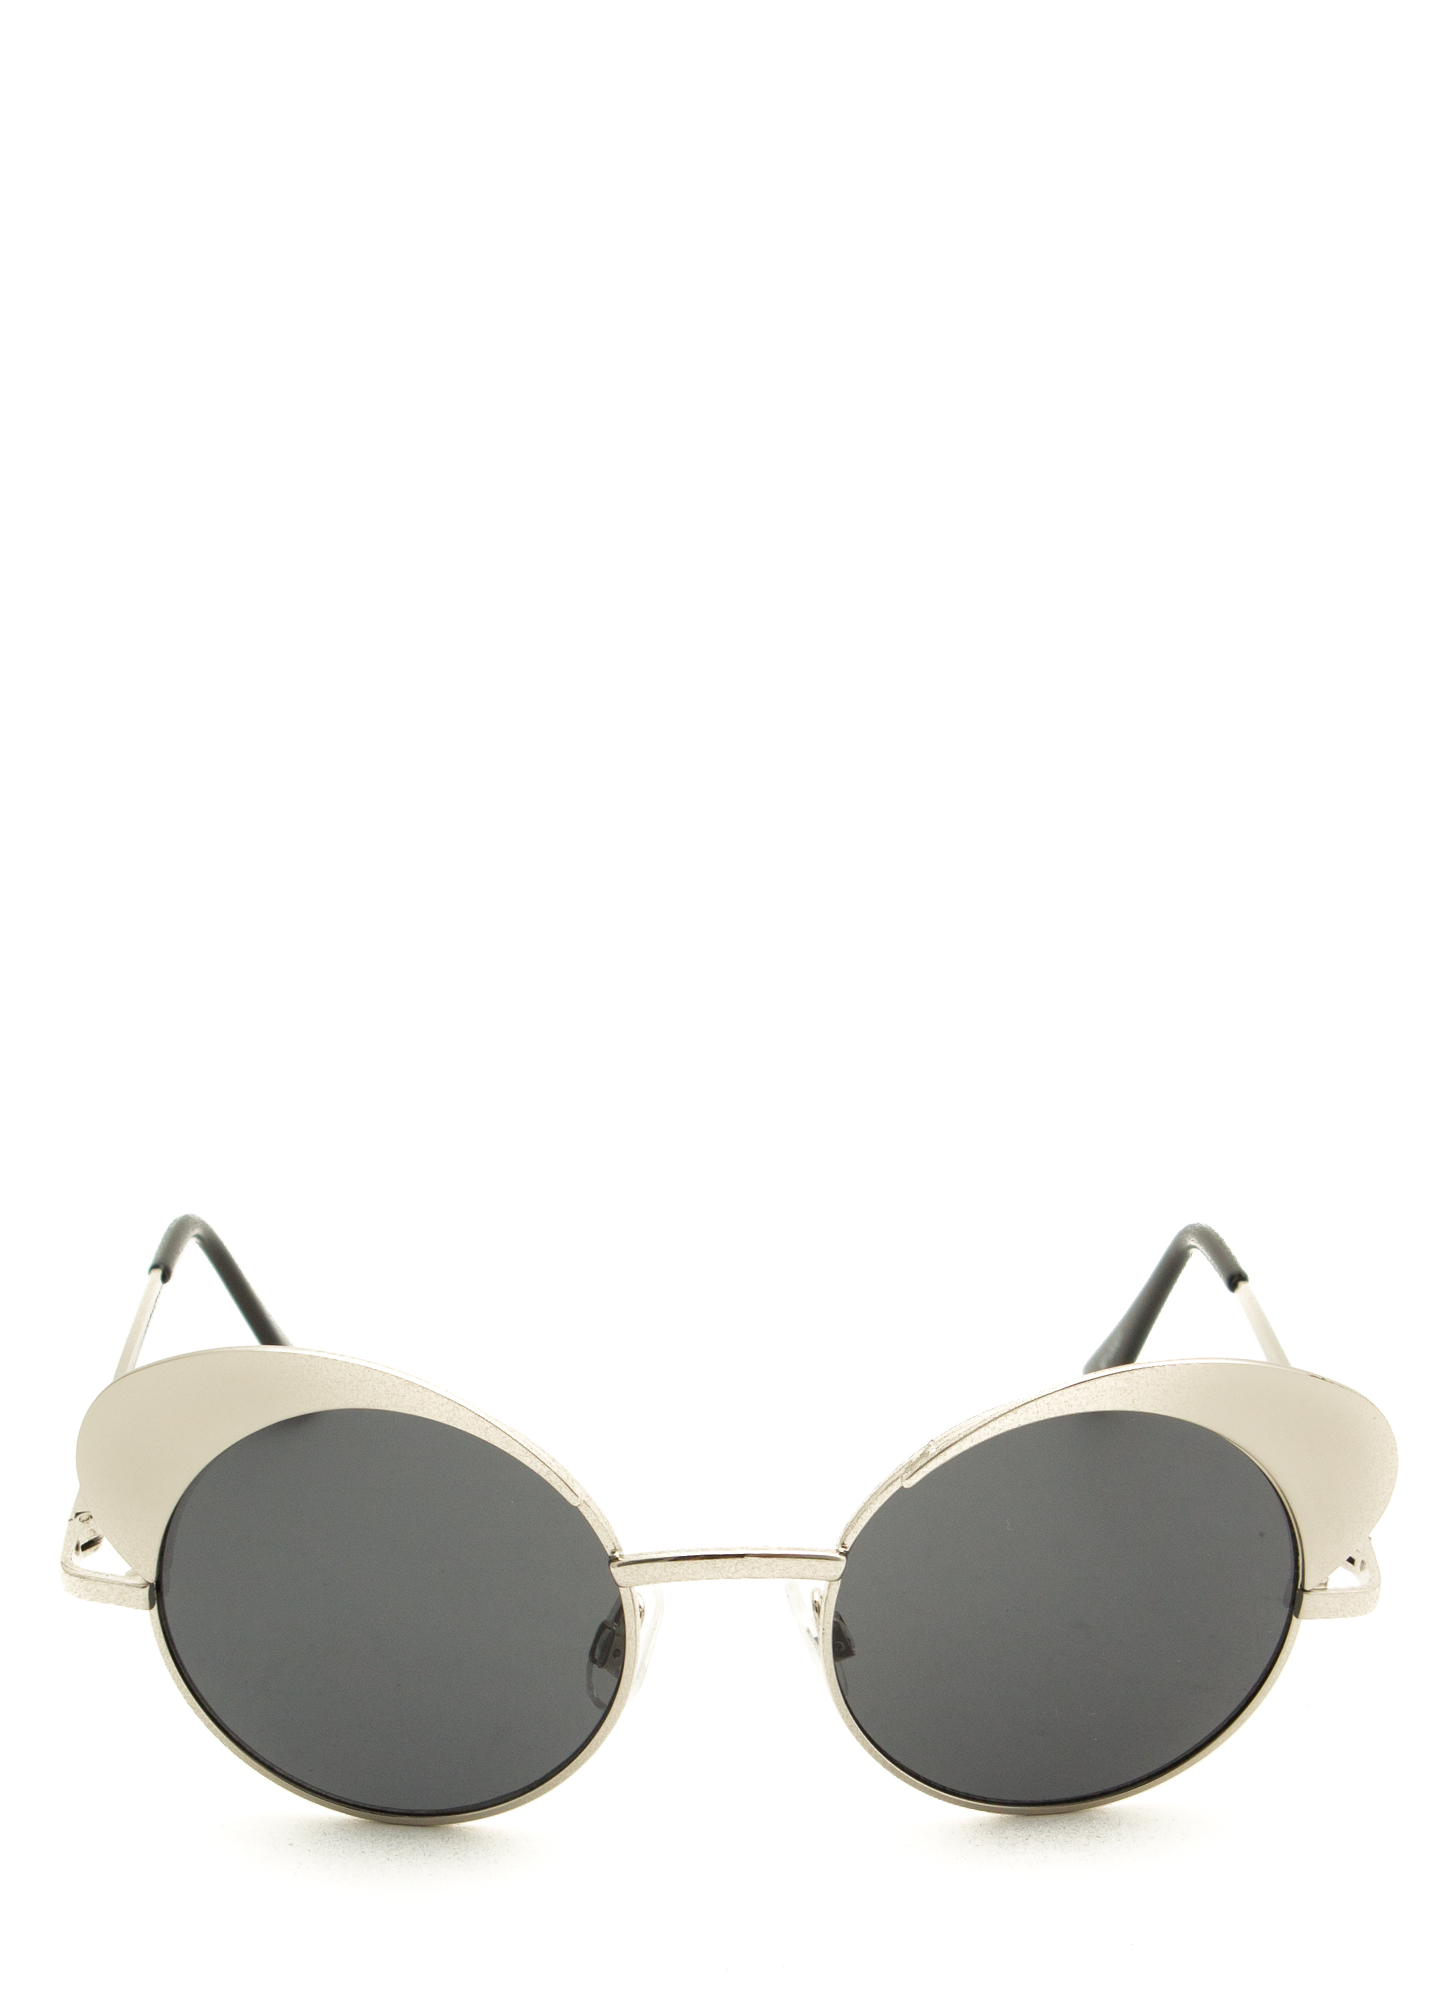 All Curves Rounded Cat Eye Sunglasses SILVER